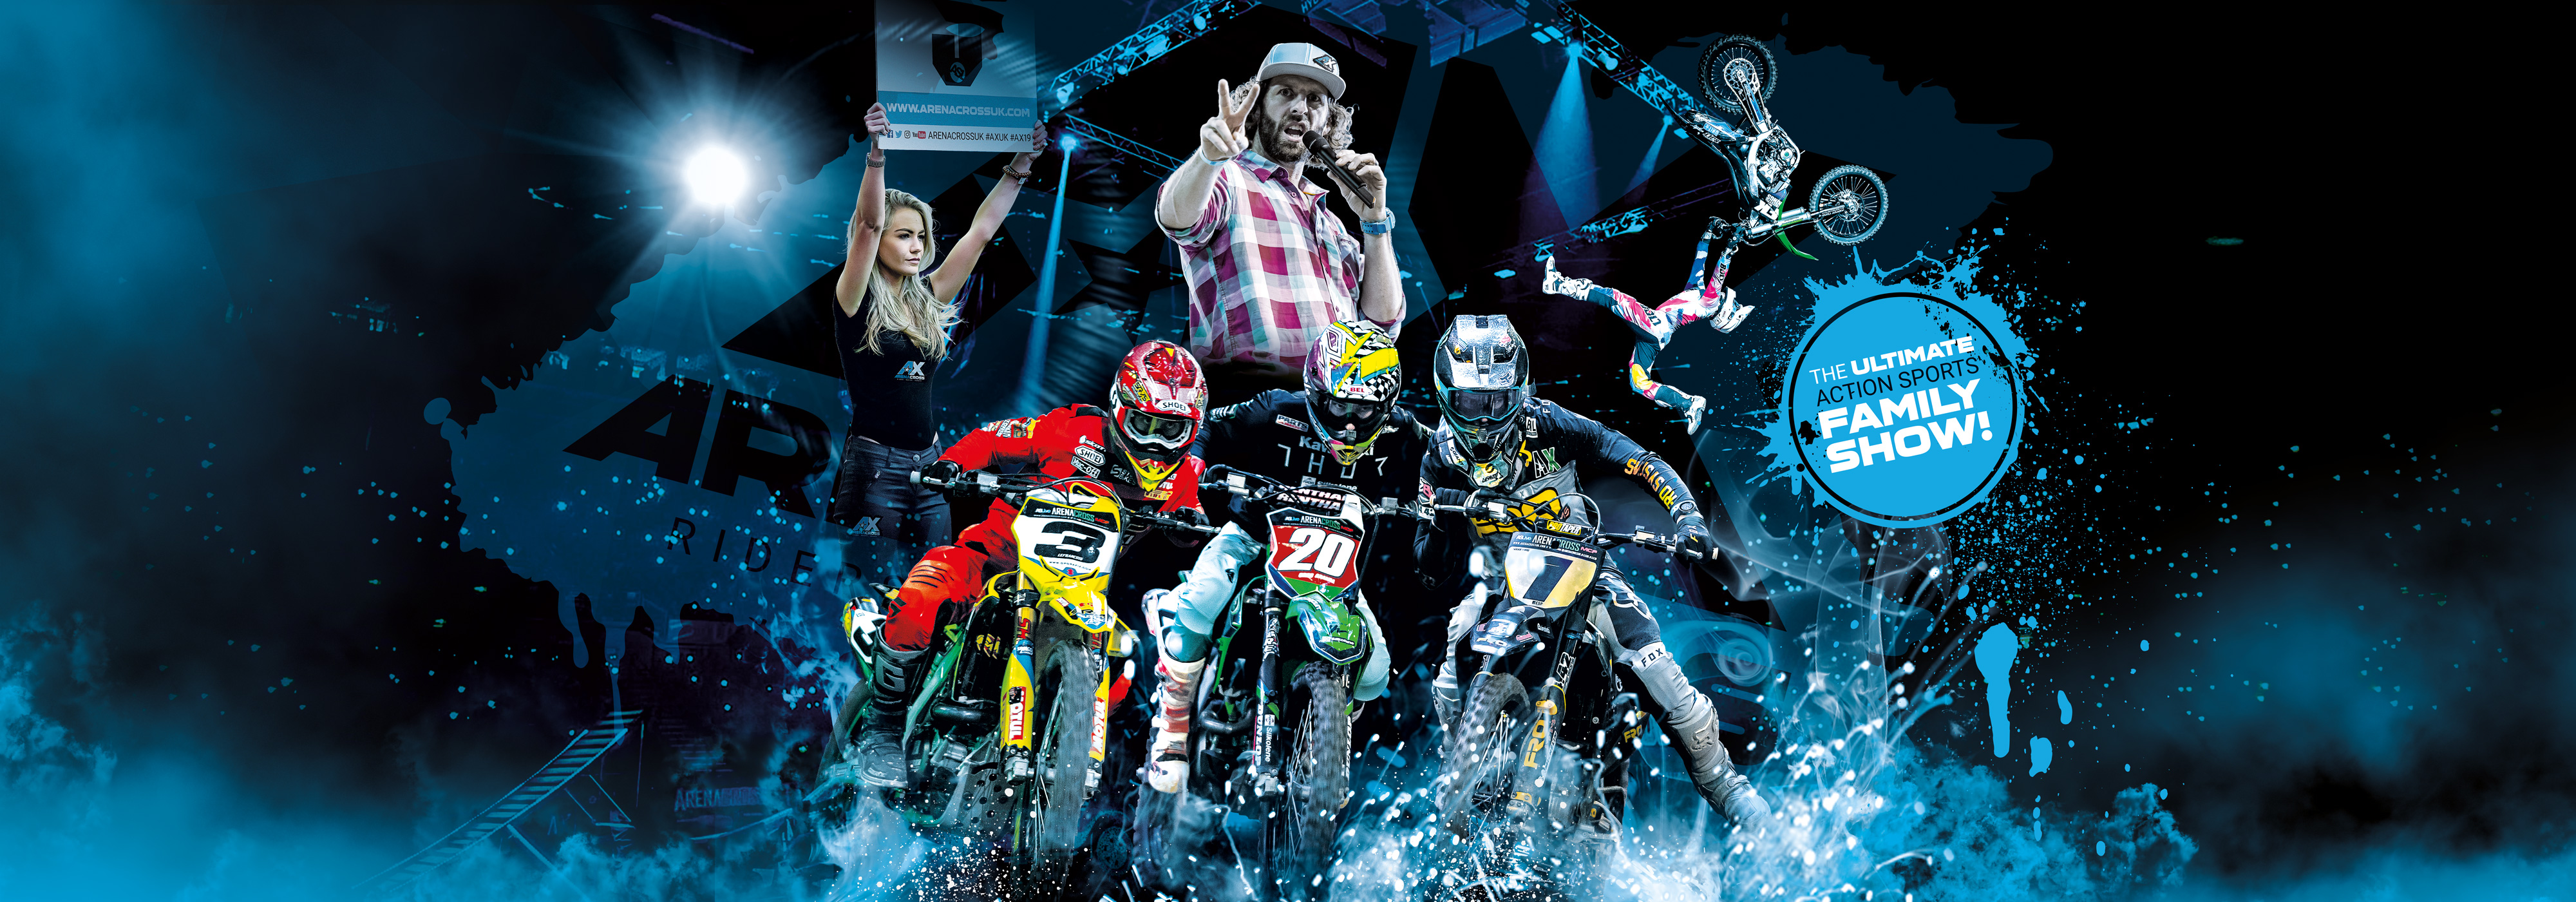 Calendrier World Tour 2020.Arenacross Uk Buy Tickets Now